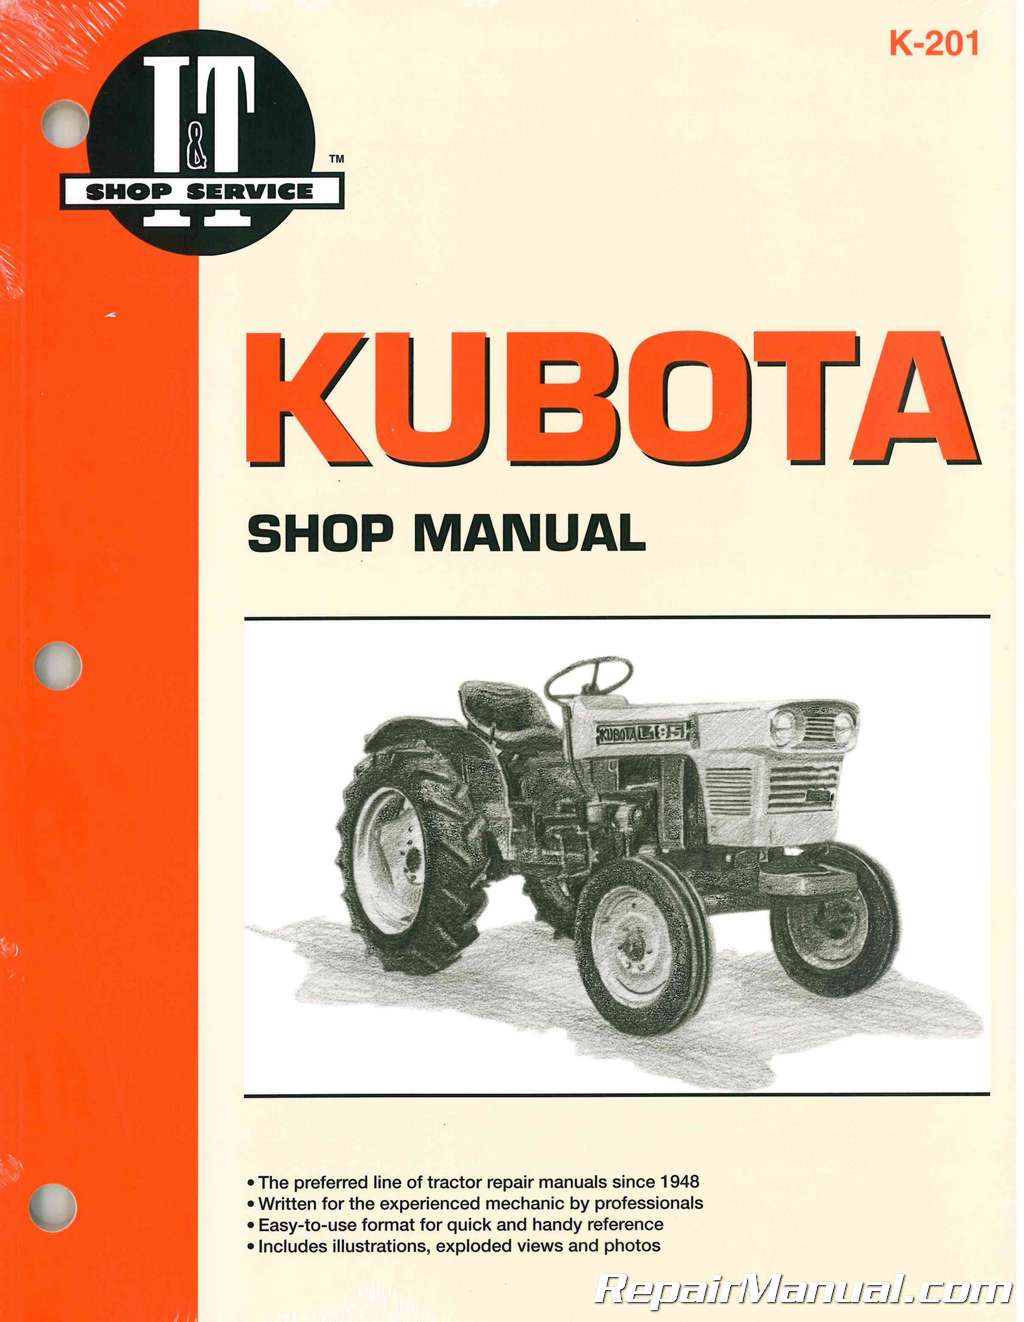 Kubota Rtv 900 Water Pump Diagram Schematics Data Wiring Diagrams 1140 Tractor L295 Get Free Image About 1100 Rtv900 Utility Vehicle